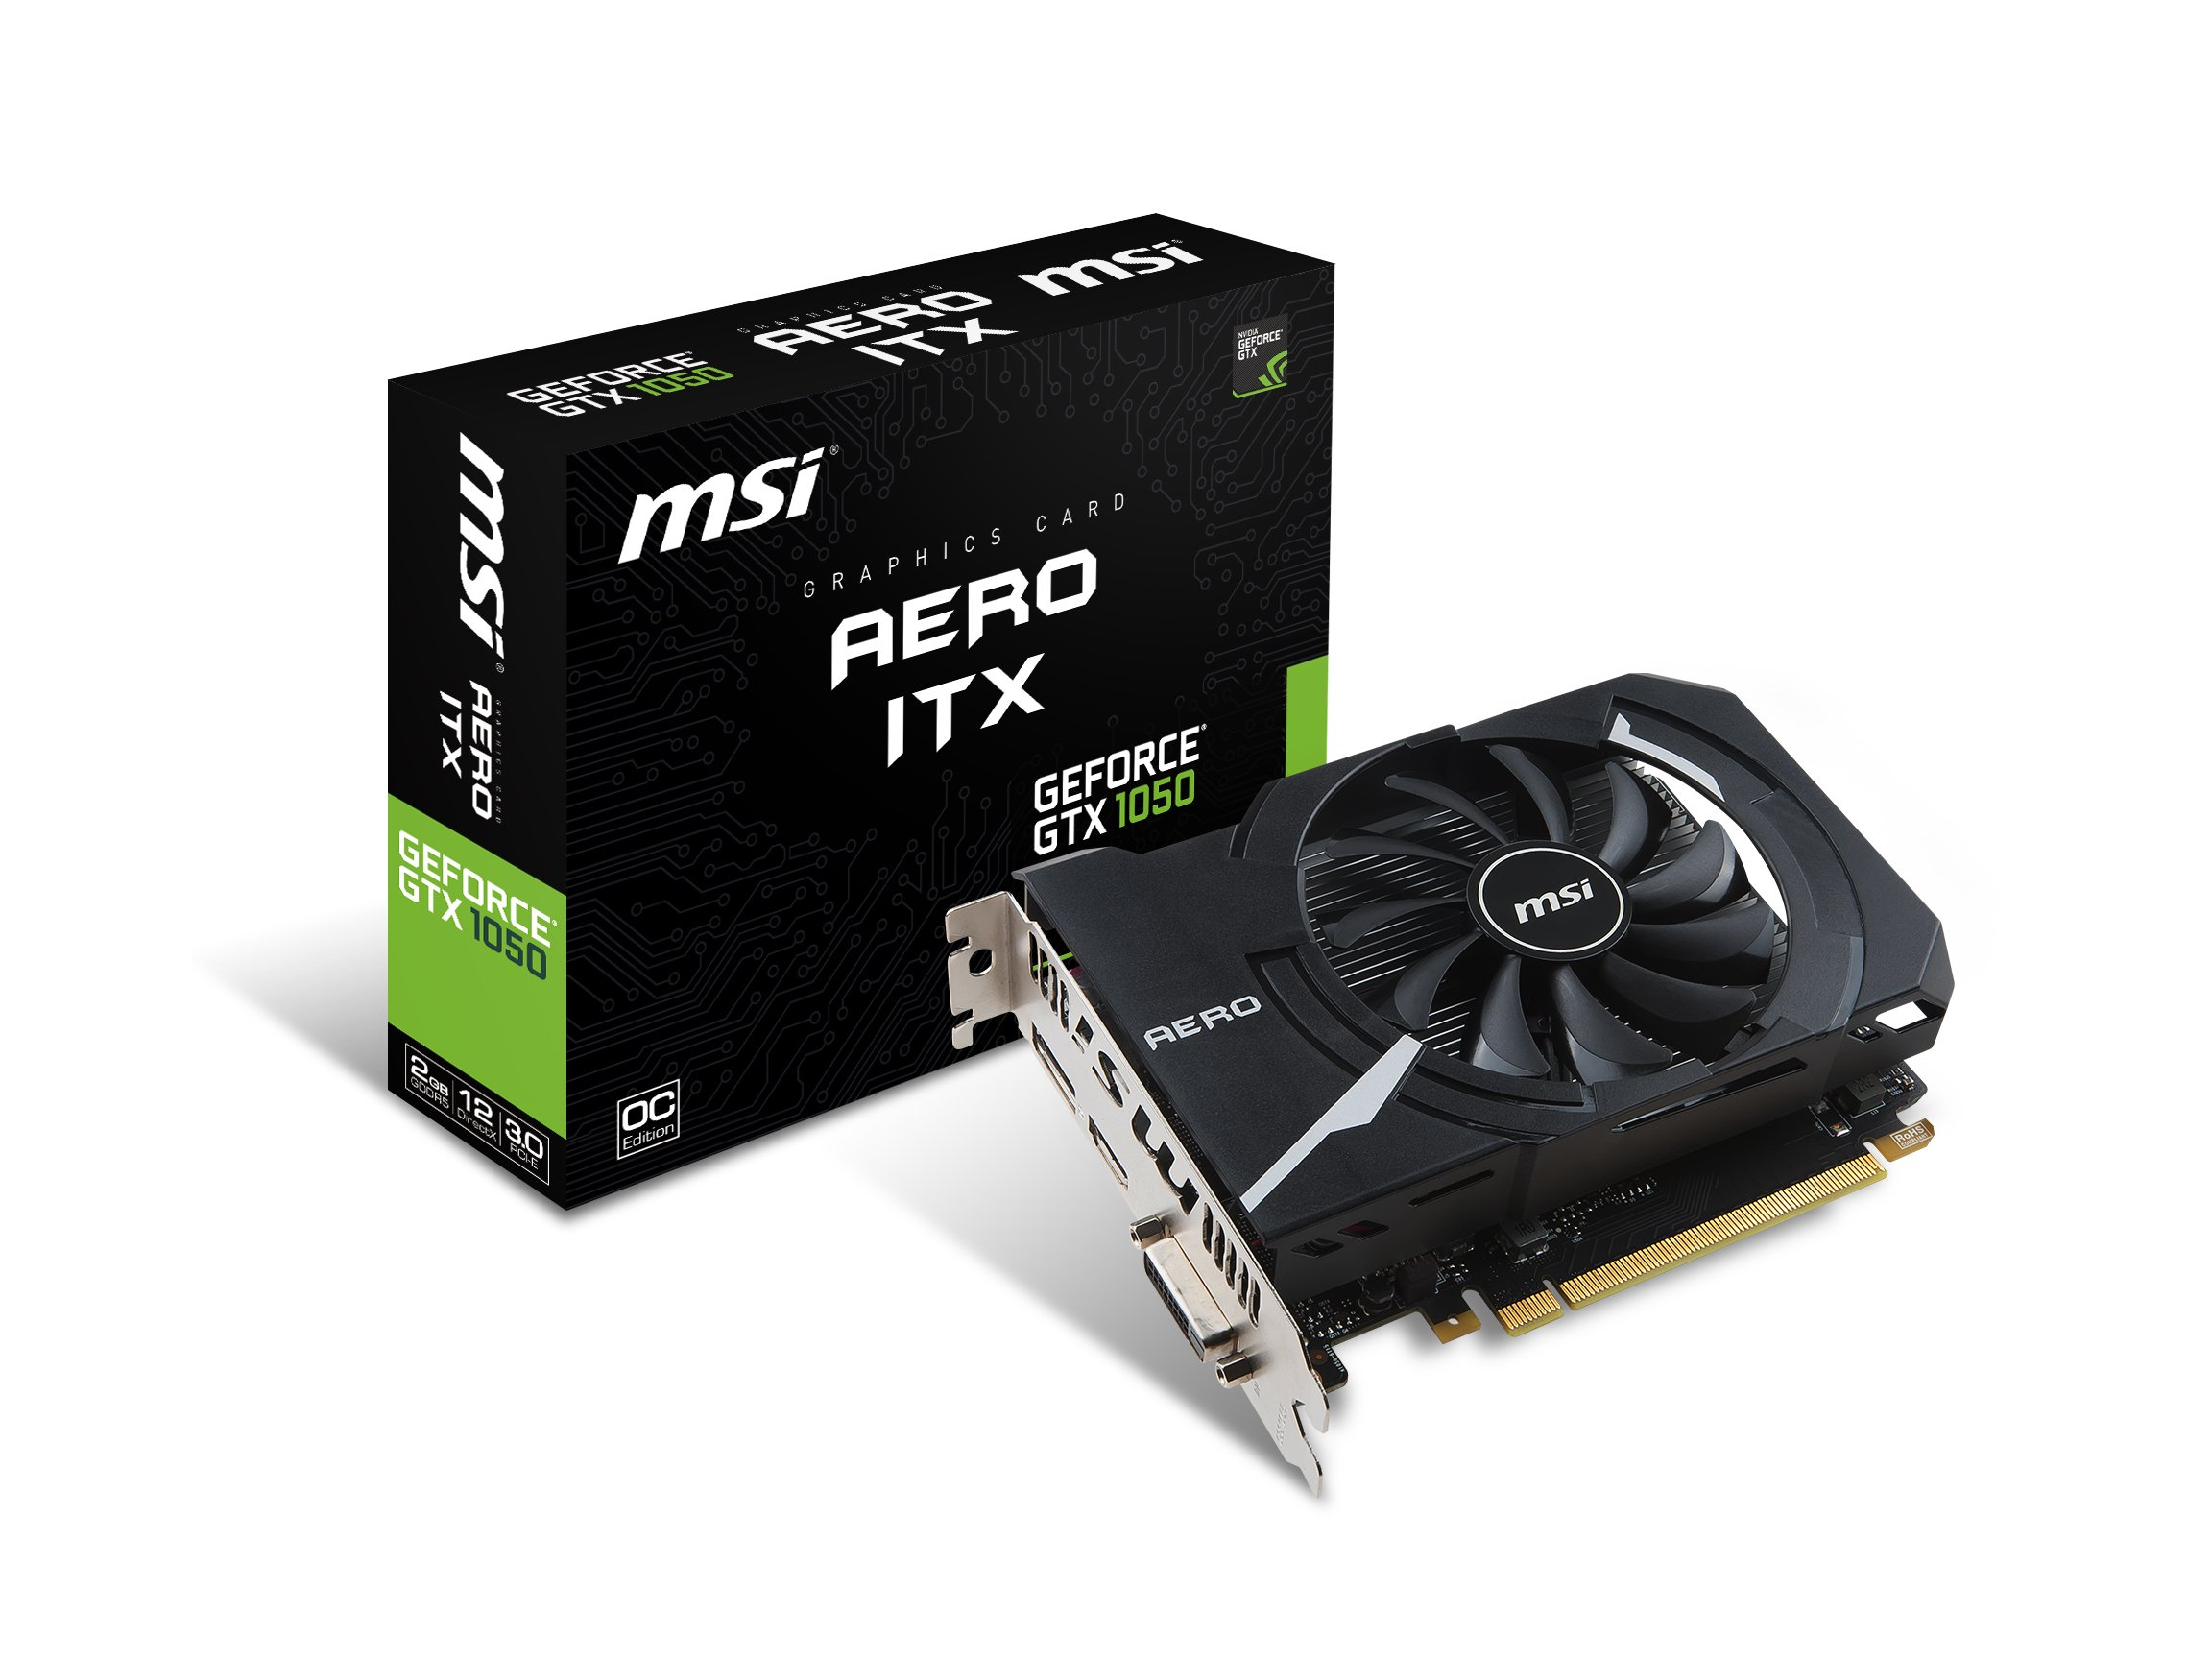 MSI Video Card Graphic Cards G1060GX6SC